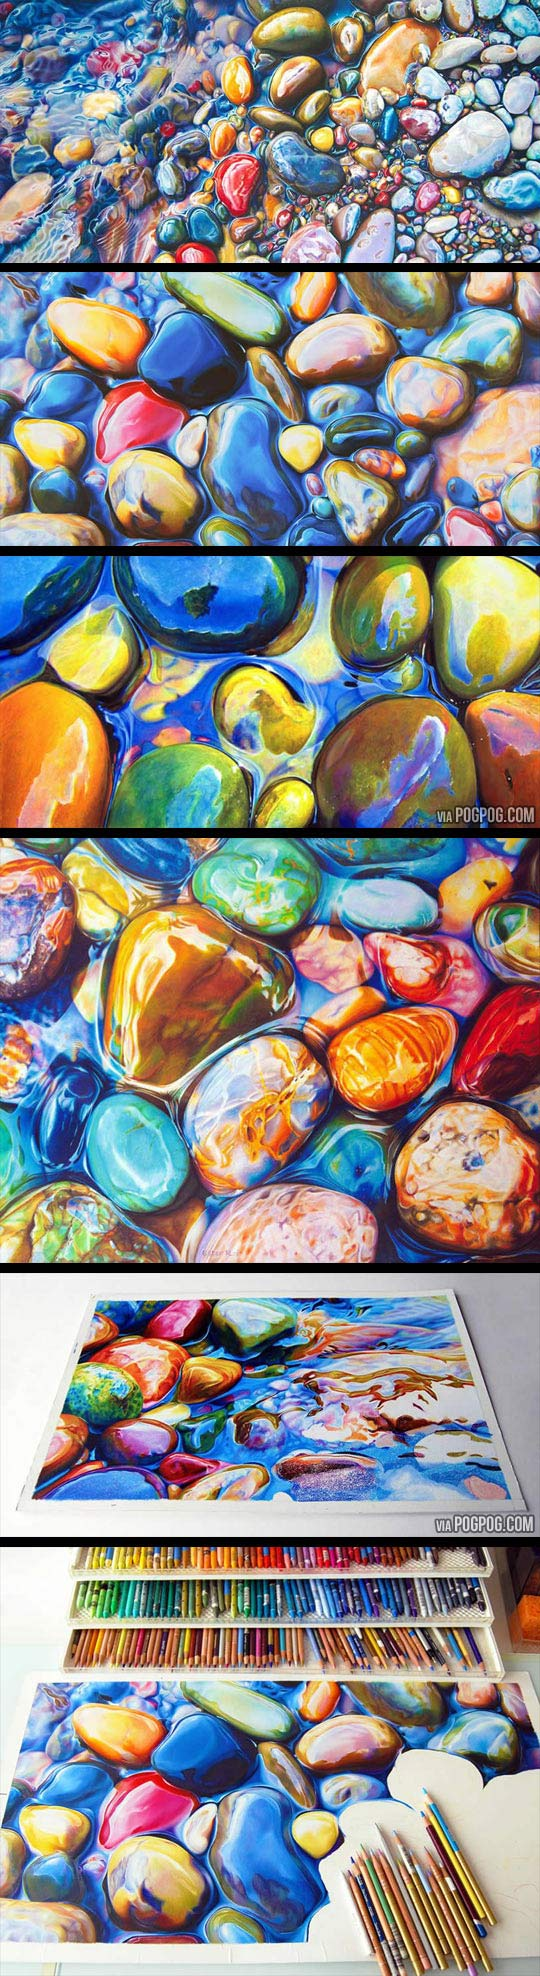 cool-picture-painting-rocks-river